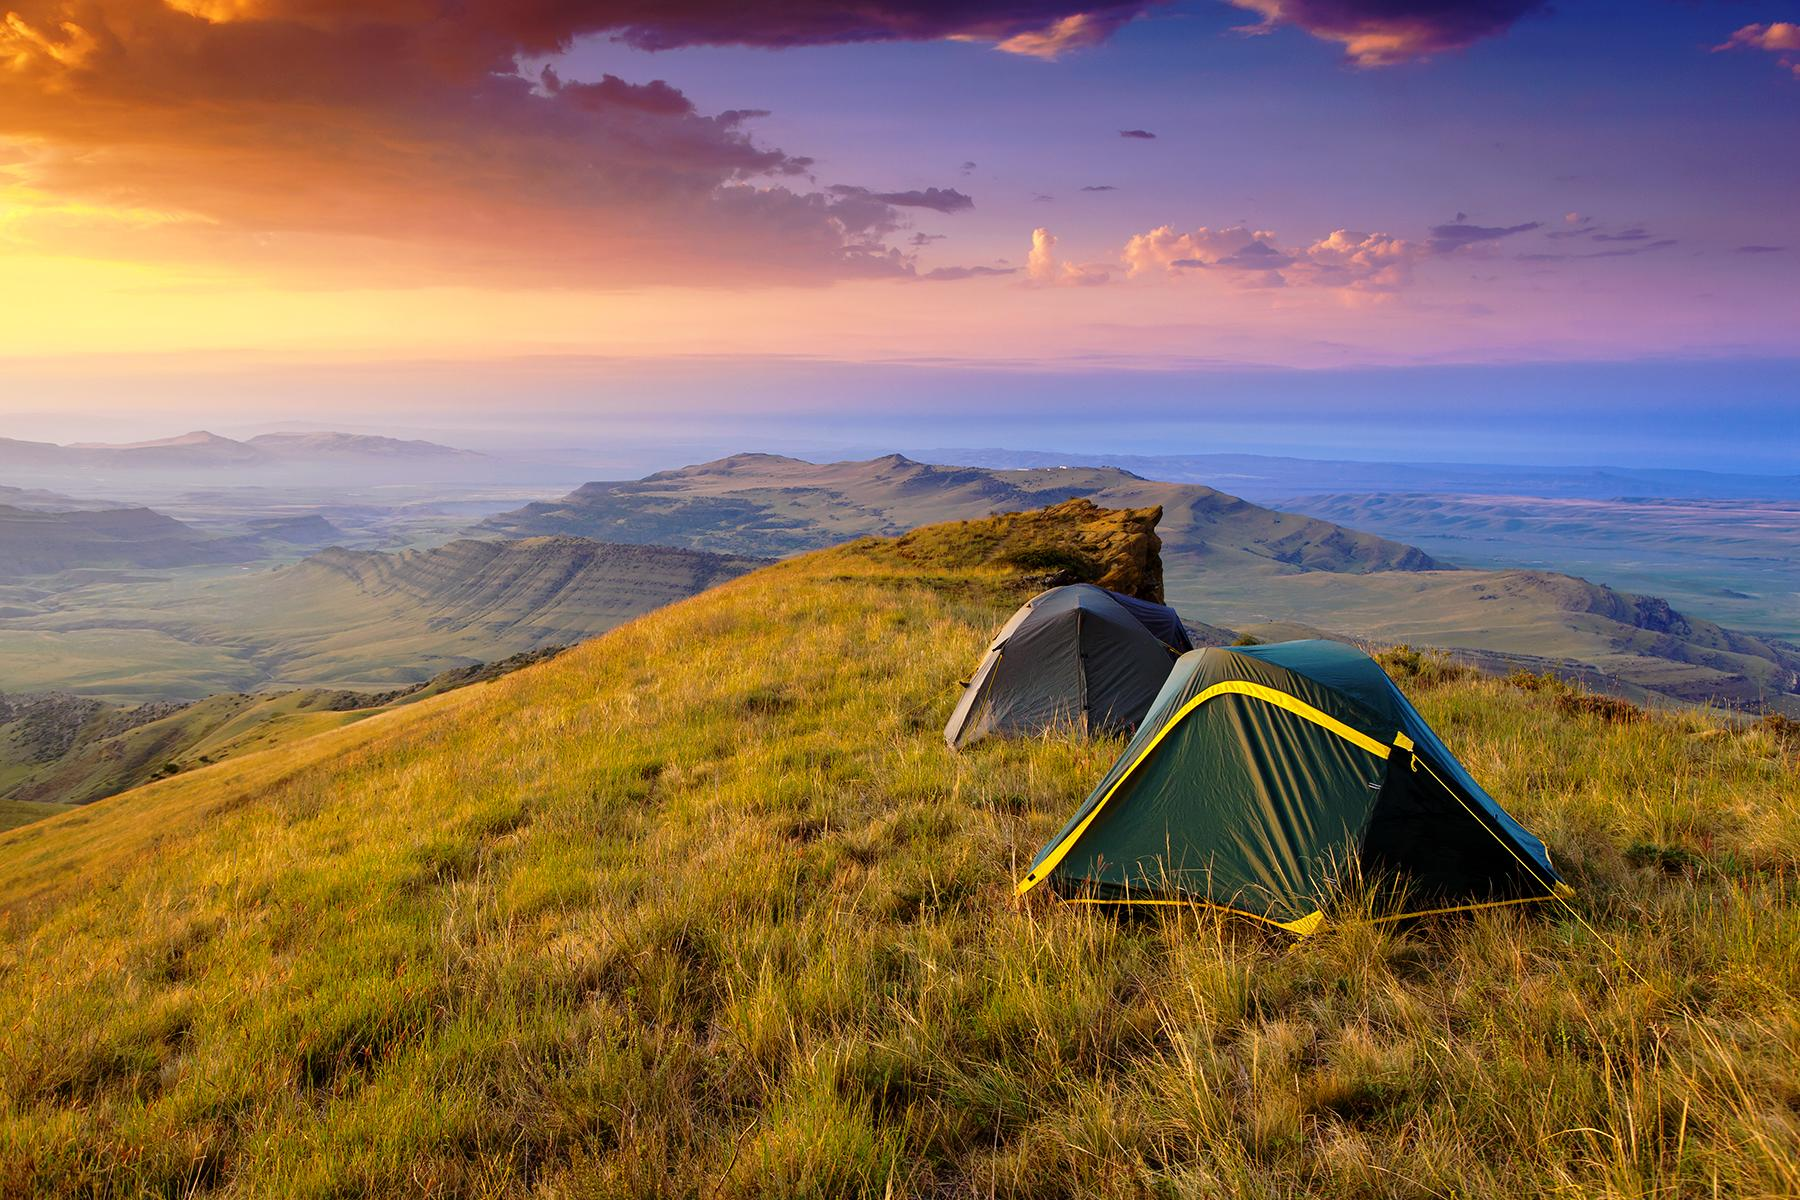 The 25 Best Campgrounds at America's National Parks